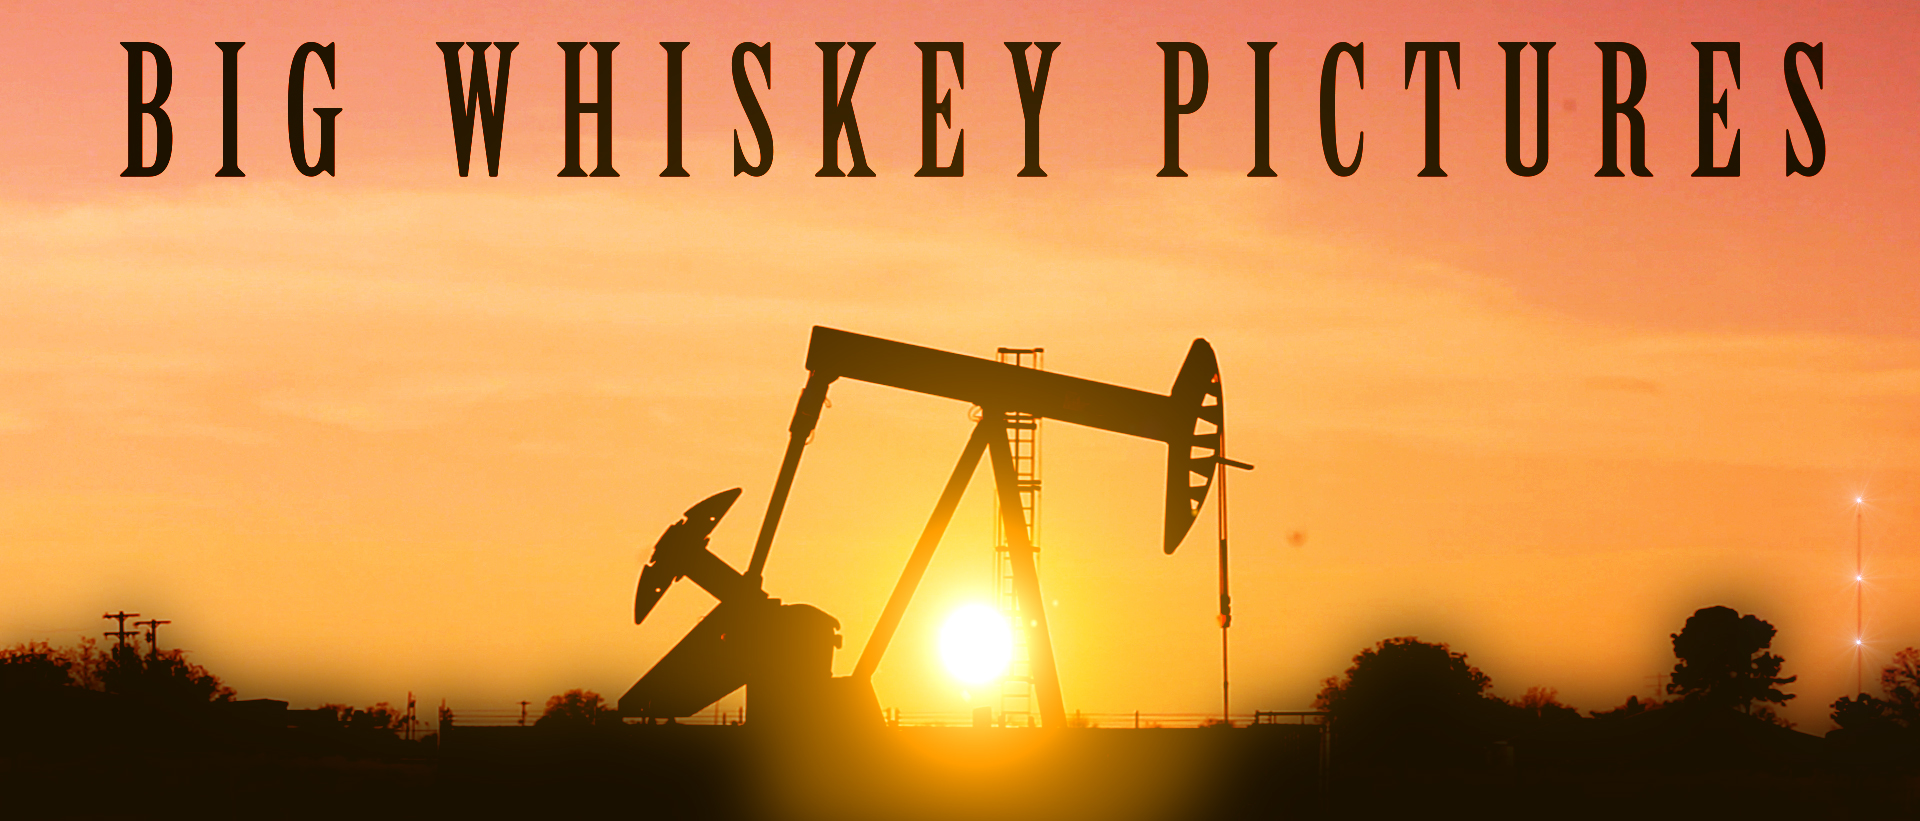 Big whiskey pictures for Big whiskey s